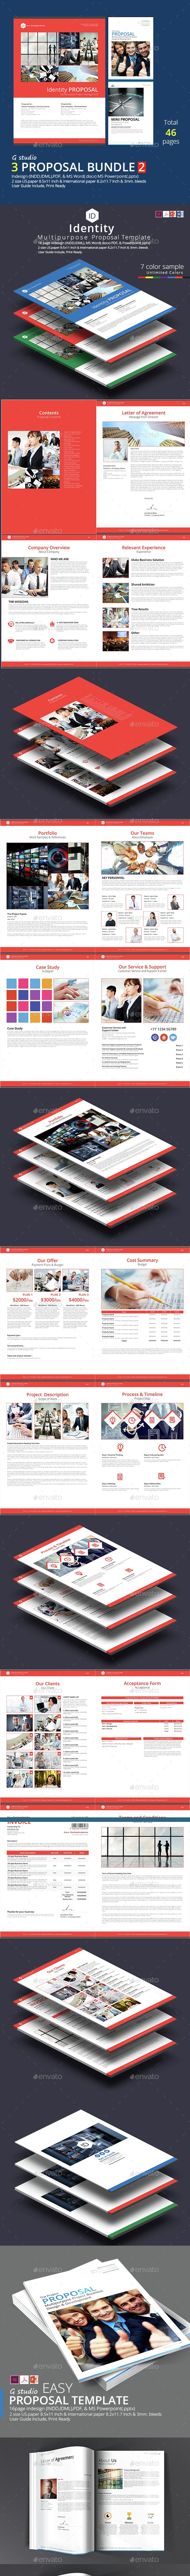 3 Proposal Bundle Template 2 - Proposals & Invoices Stationery